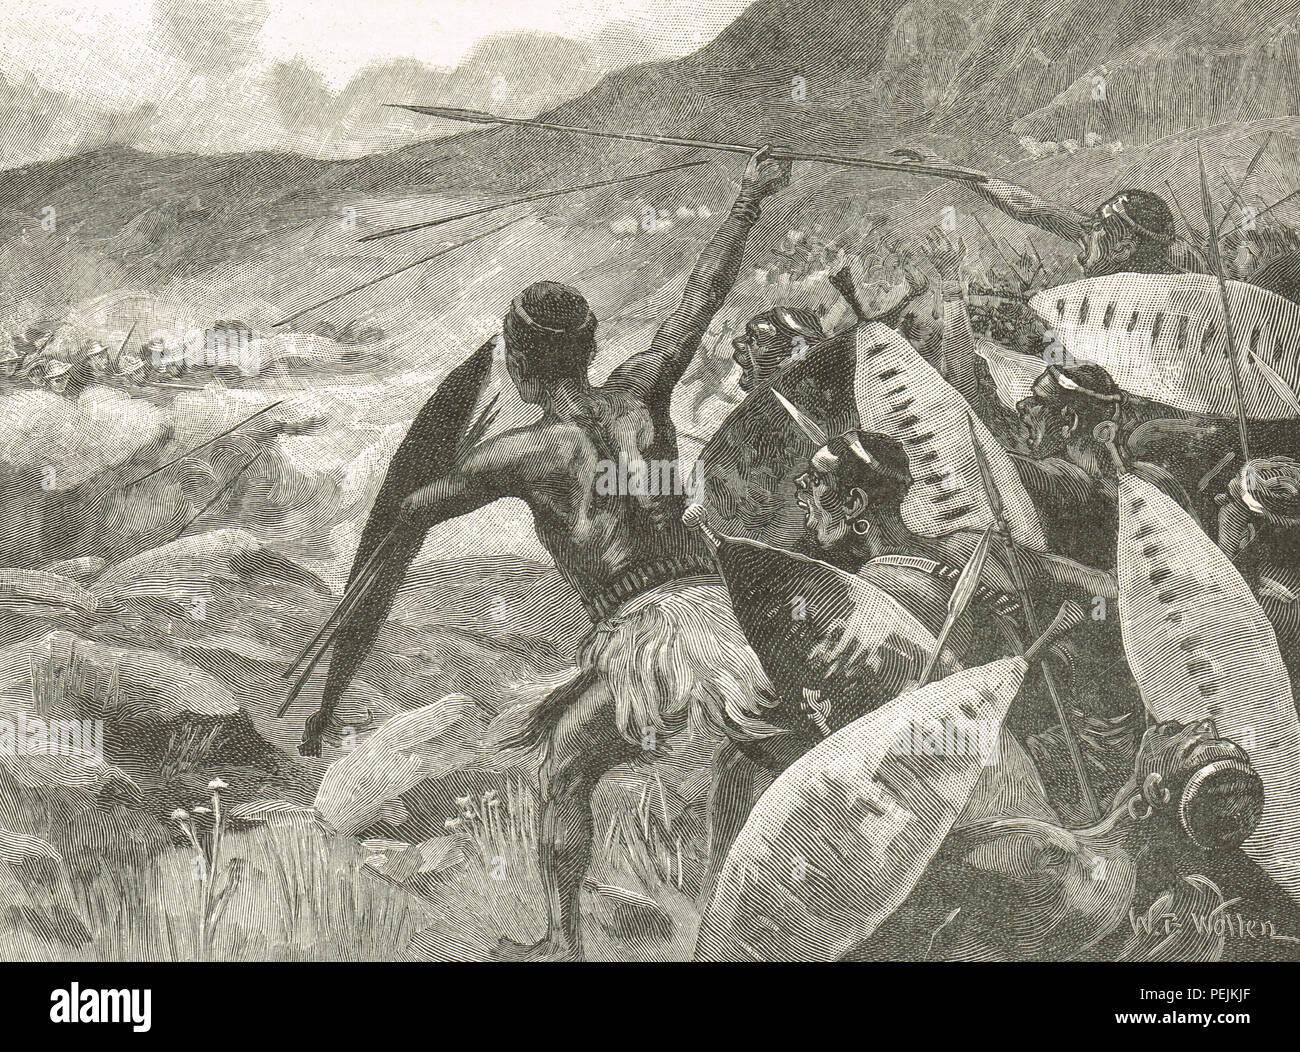 Fighting in the Matappo hills, a charge of Matabele warriors, during The Second Matabele War 1896 to 1897.  Also known as the Matabeleland Rebellion, and known in Zimbabwe as the First Chimurenga - Stock Image